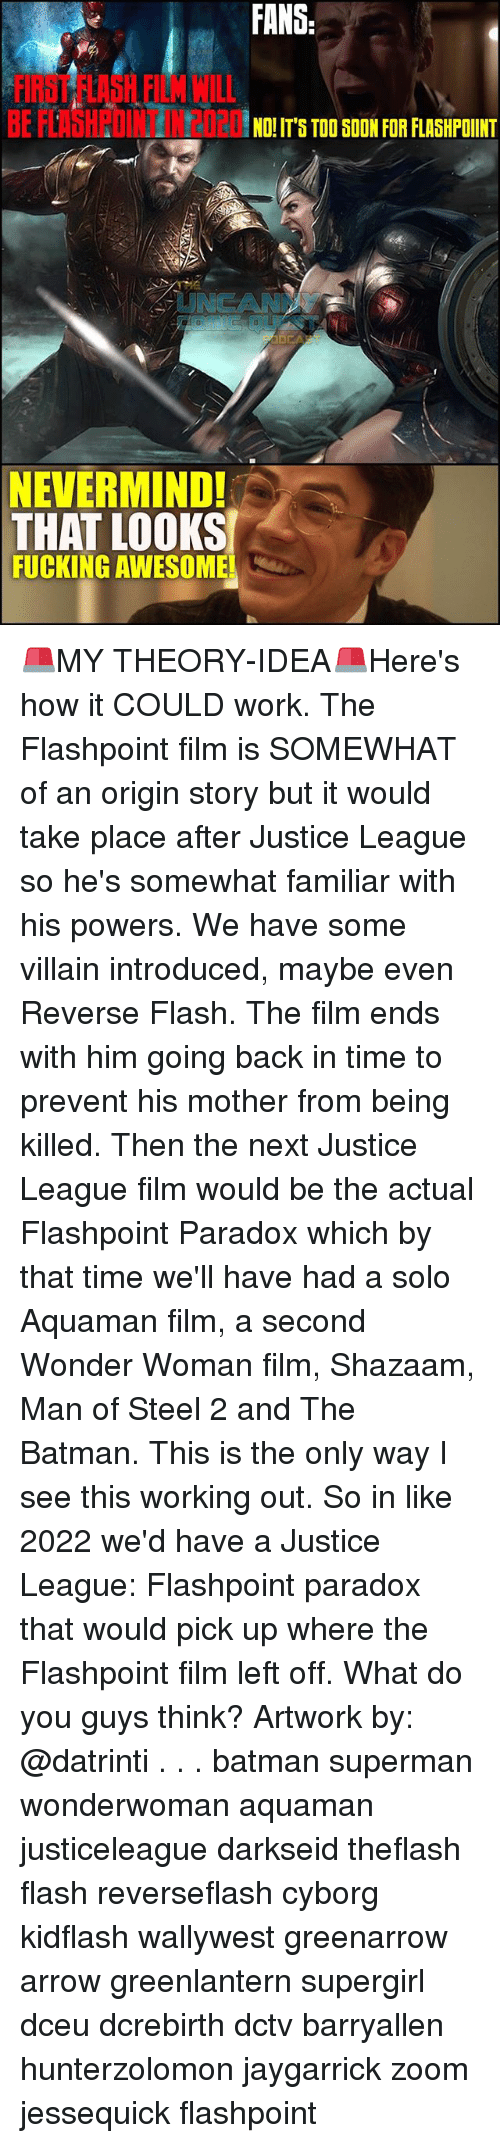 originality: FANS  FIRST FLASH FILM WILL  BE FLAHPOINT N2020S T00  NO! IT'S TOO SOON FOR FLASHPOINT  UNCANN  NEVERMIND!  THAT LOOKS  FUCKING AWESOME 🚨MY THEORY-IDEA🚨Here's how it COULD work. The Flashpoint film is SOMEWHAT of an origin story but it would take place after Justice League so he's somewhat familiar with his powers. We have some villain introduced, maybe even Reverse Flash. The film ends with him going back in time to prevent his mother from being killed. Then the next Justice League film would be the actual Flashpoint Paradox which by that time we'll have had a solo Aquaman film, a second Wonder Woman film, Shazaam, Man of Steel 2 and The Batman. This is the only way I see this working out. So in like 2022 we'd have a Justice League: Flashpoint paradox that would pick up where the Flashpoint film left off. What do you guys think? Artwork by: @datrinti . . . batman superman wonderwoman aquaman justiceleague darkseid theflash flash reverseflash cyborg kidflash wallywest greenarrow arrow greenlantern supergirl dceu dcrebirth dctv barryallen hunterzolomon jaygarrick zoom jessequick flashpoint